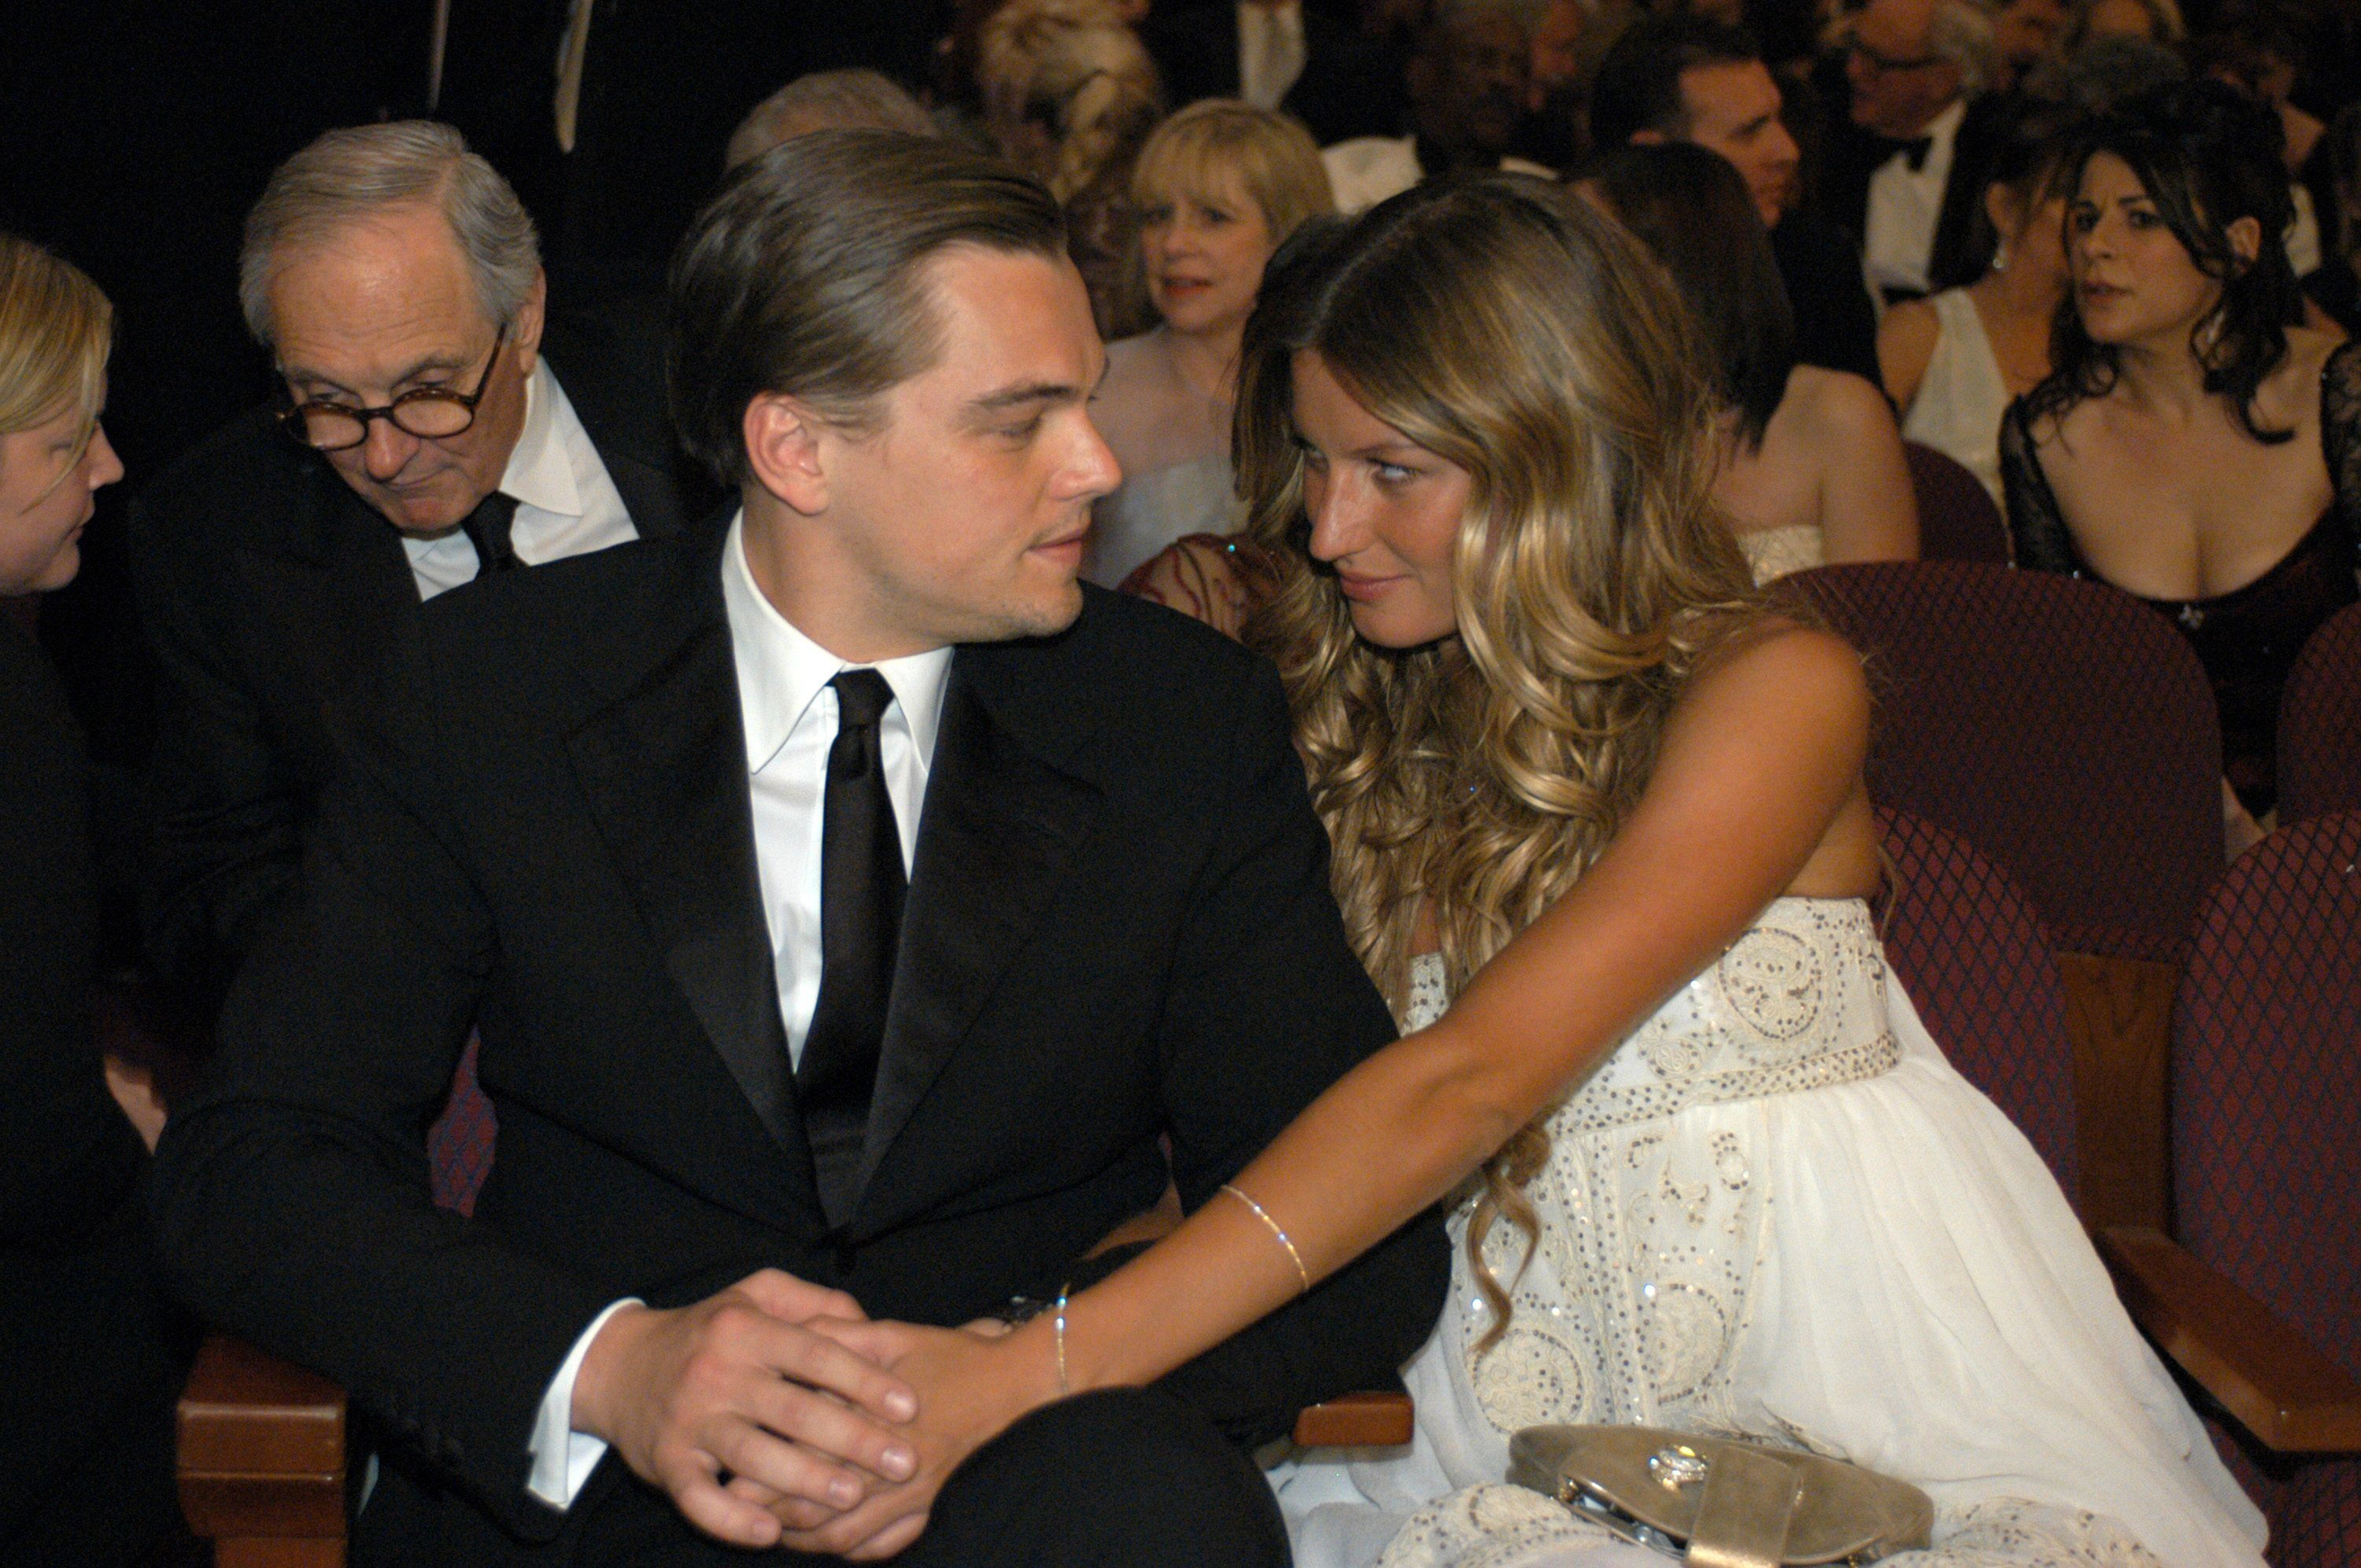 Academy Award Best Actor nominee Leonardo DiCaprio shares a moment with Gisele Bundchen.